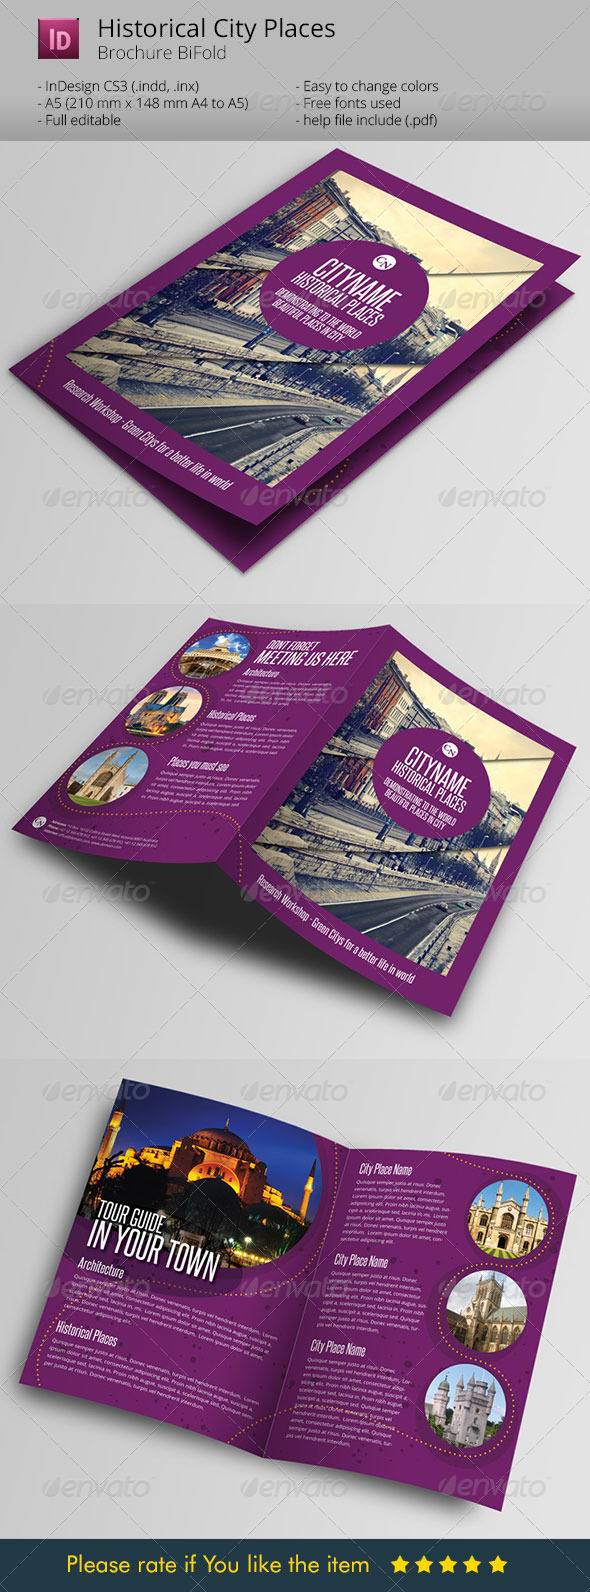 History City Guide Template Brochure - Informational Brochures